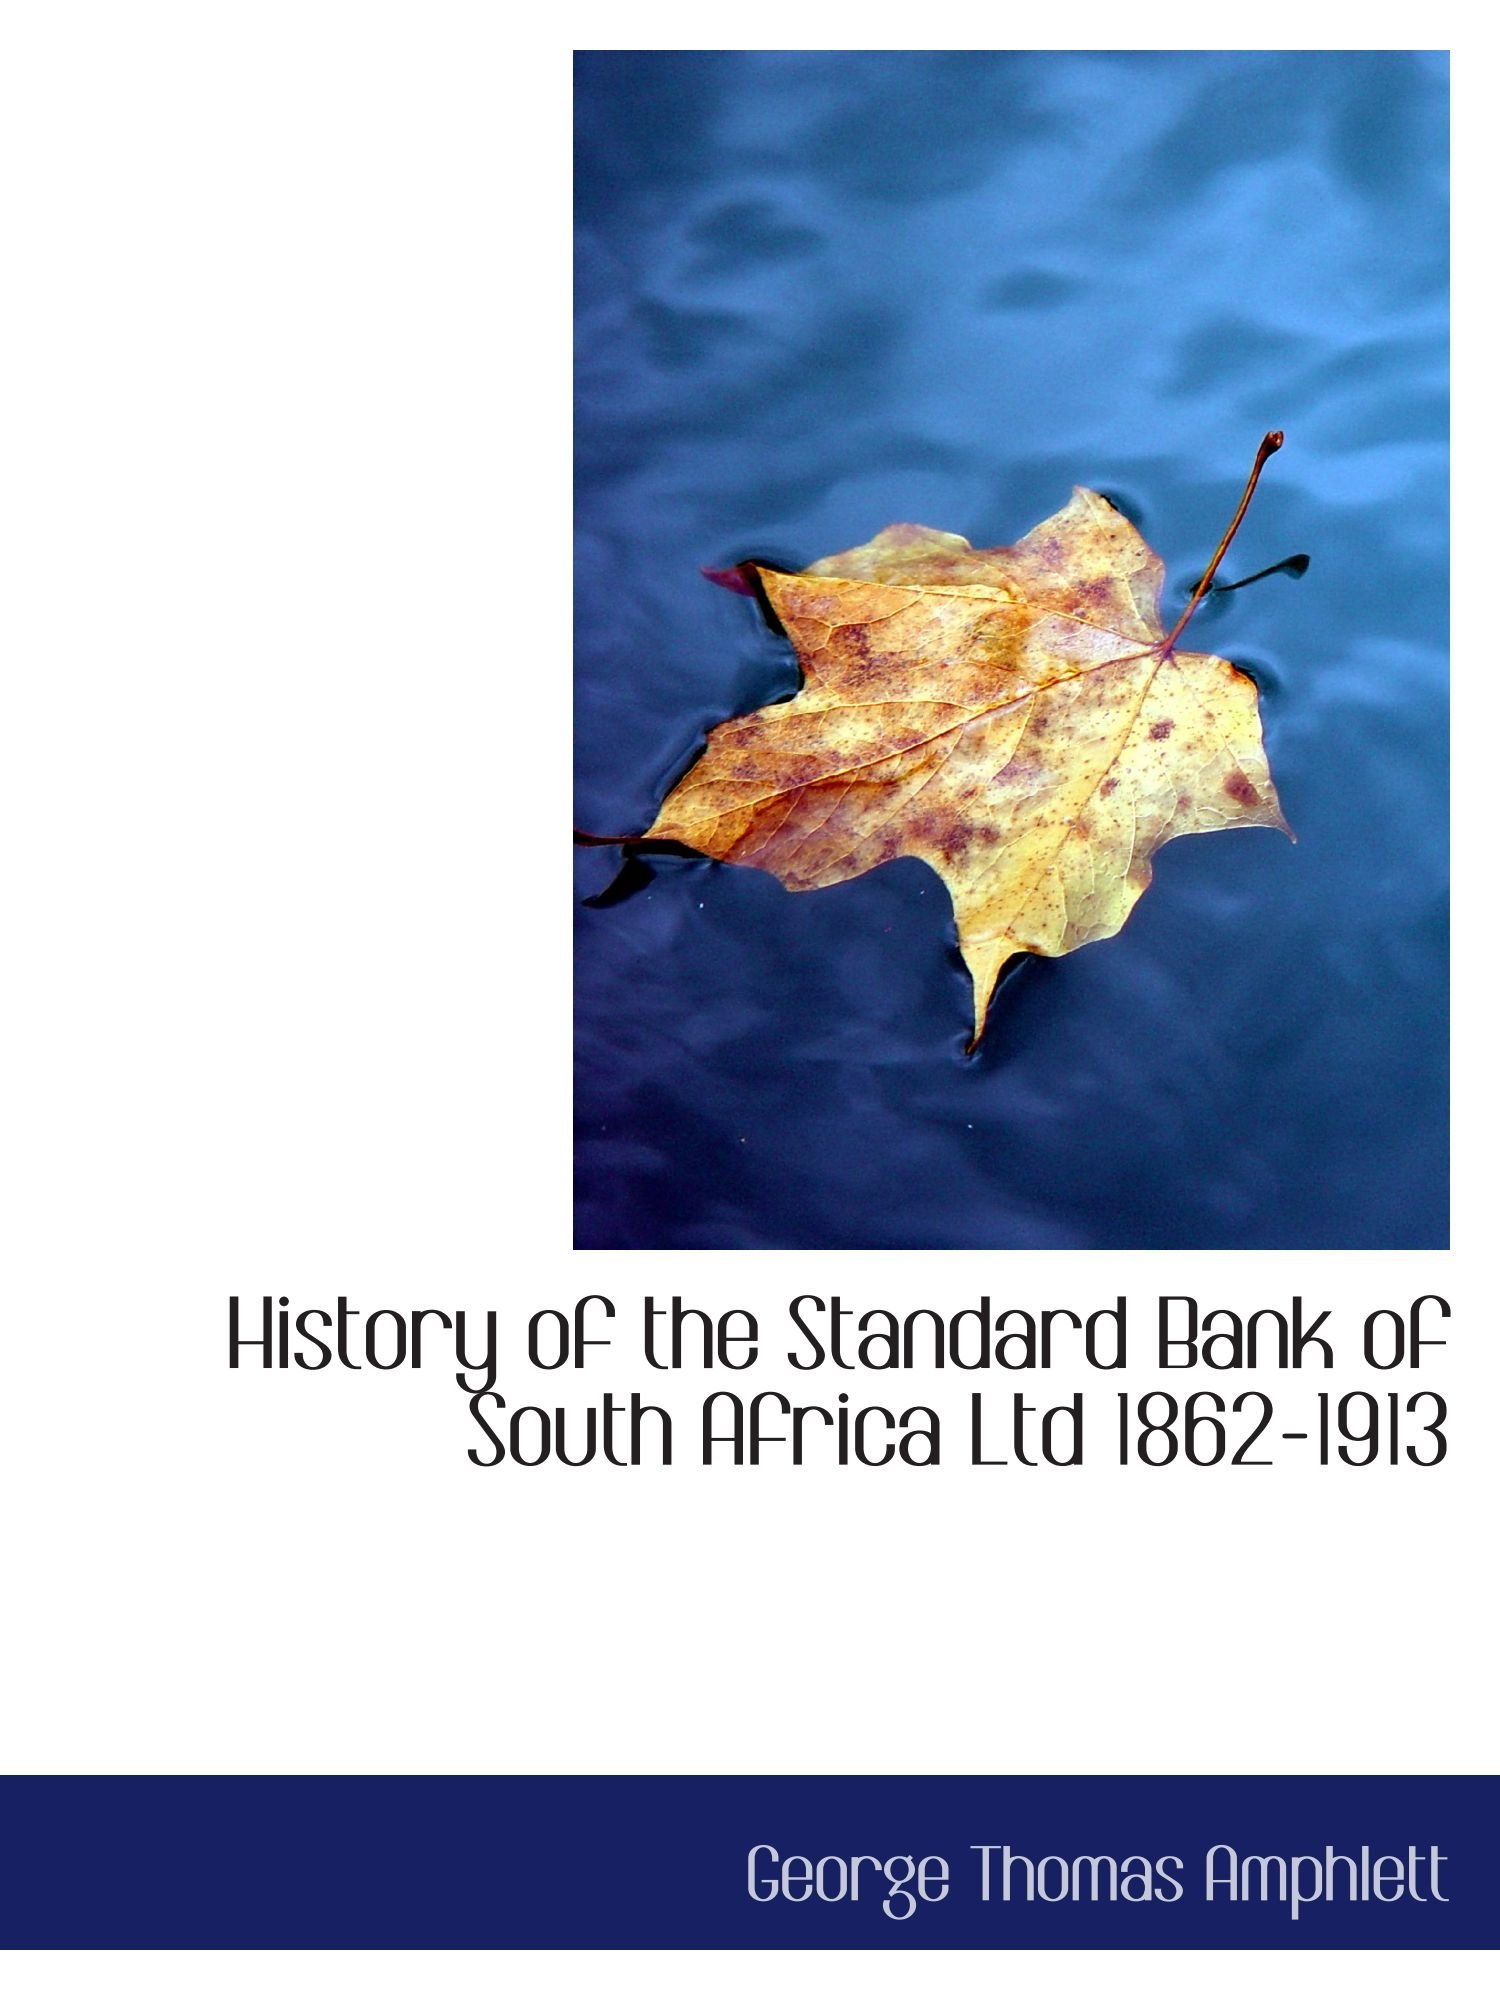 Read Online History of the Standard Bank of South Africa Ltd 1862-1913 pdf